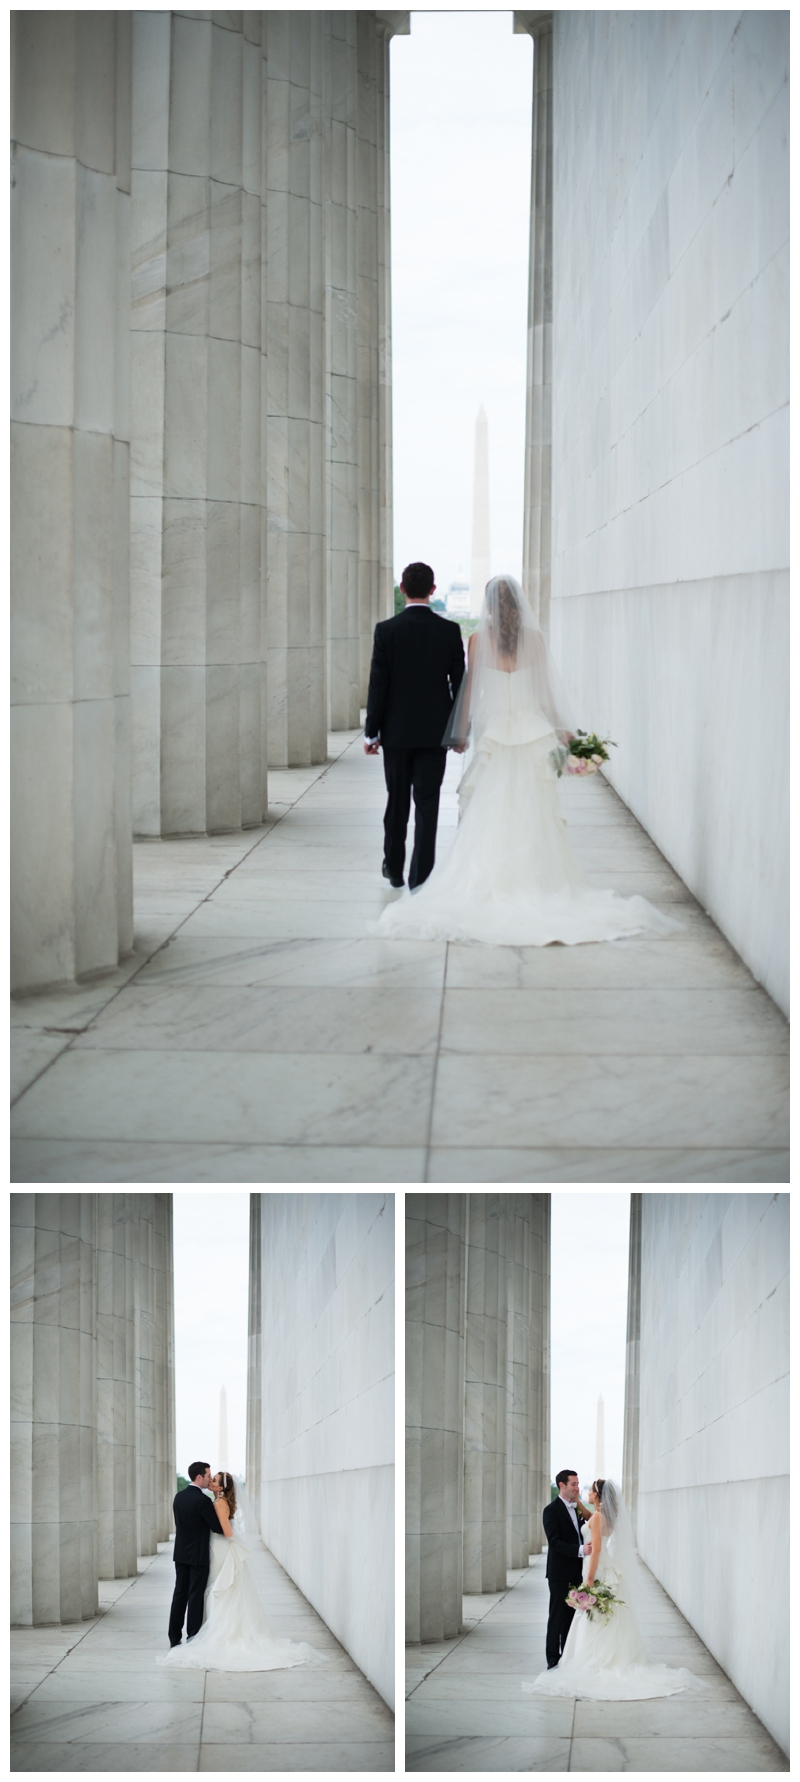 DC Wedding Day Portraits of Bride and Groom at the Lincoln Memorial by Rachael Foster Photography_0042.jpg